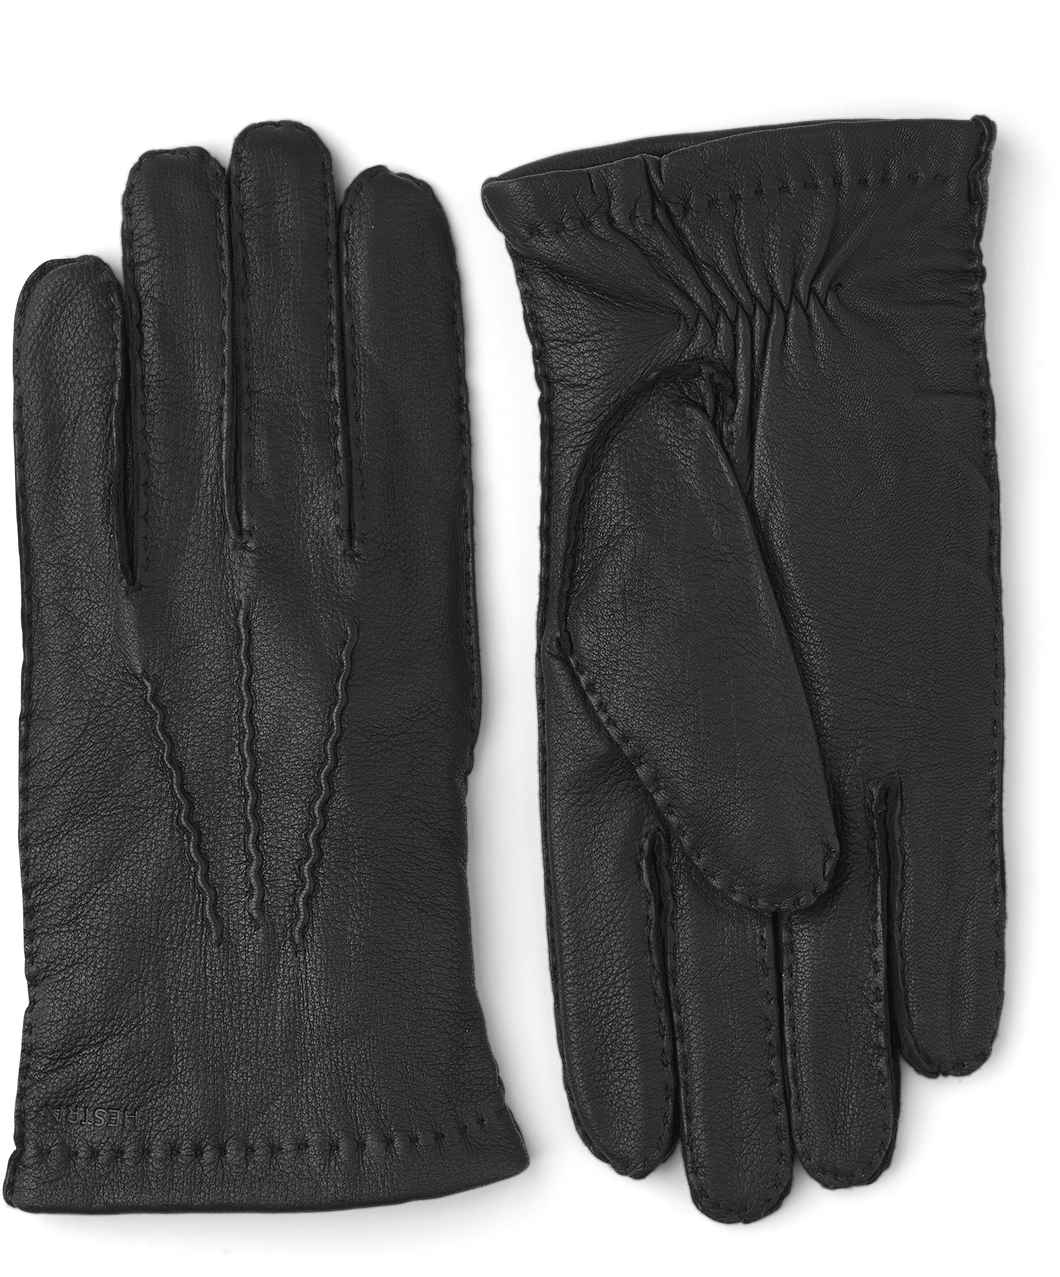 Hestra - Glove Matthew Black